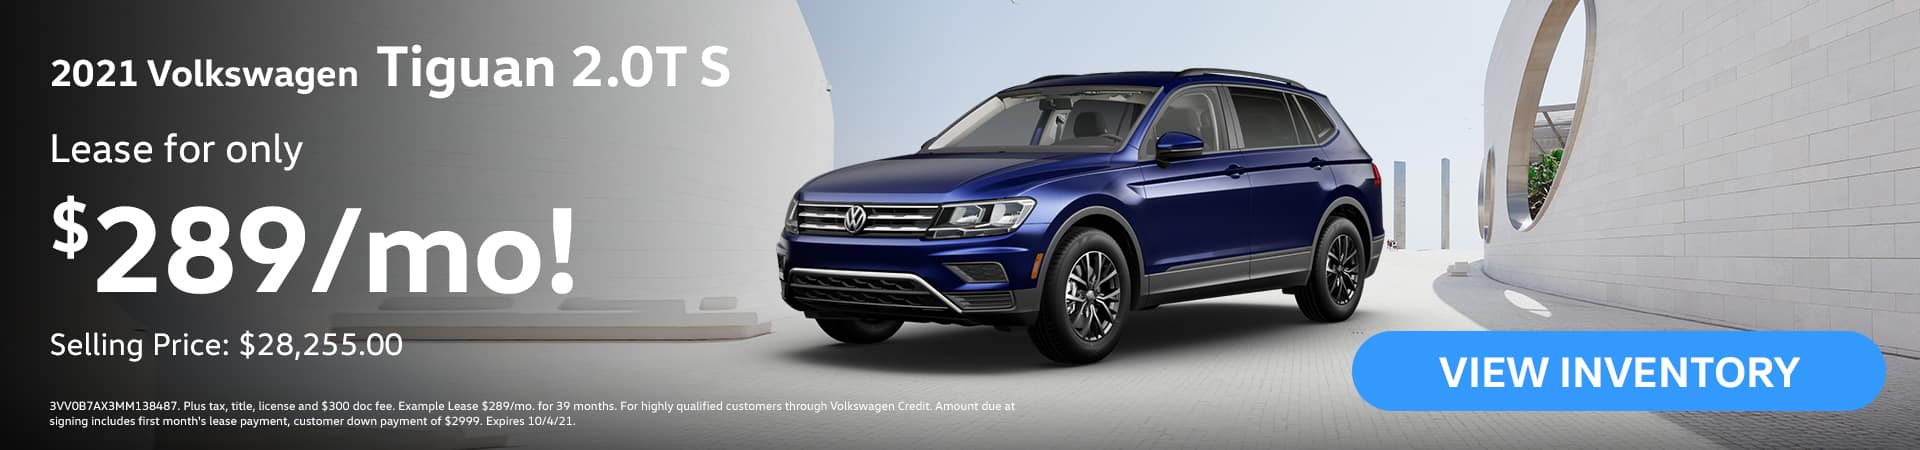 2021 Volkswagen Tiguan 2.0T S Lease for ONLY 289/month! Selling Price: $28,255.00